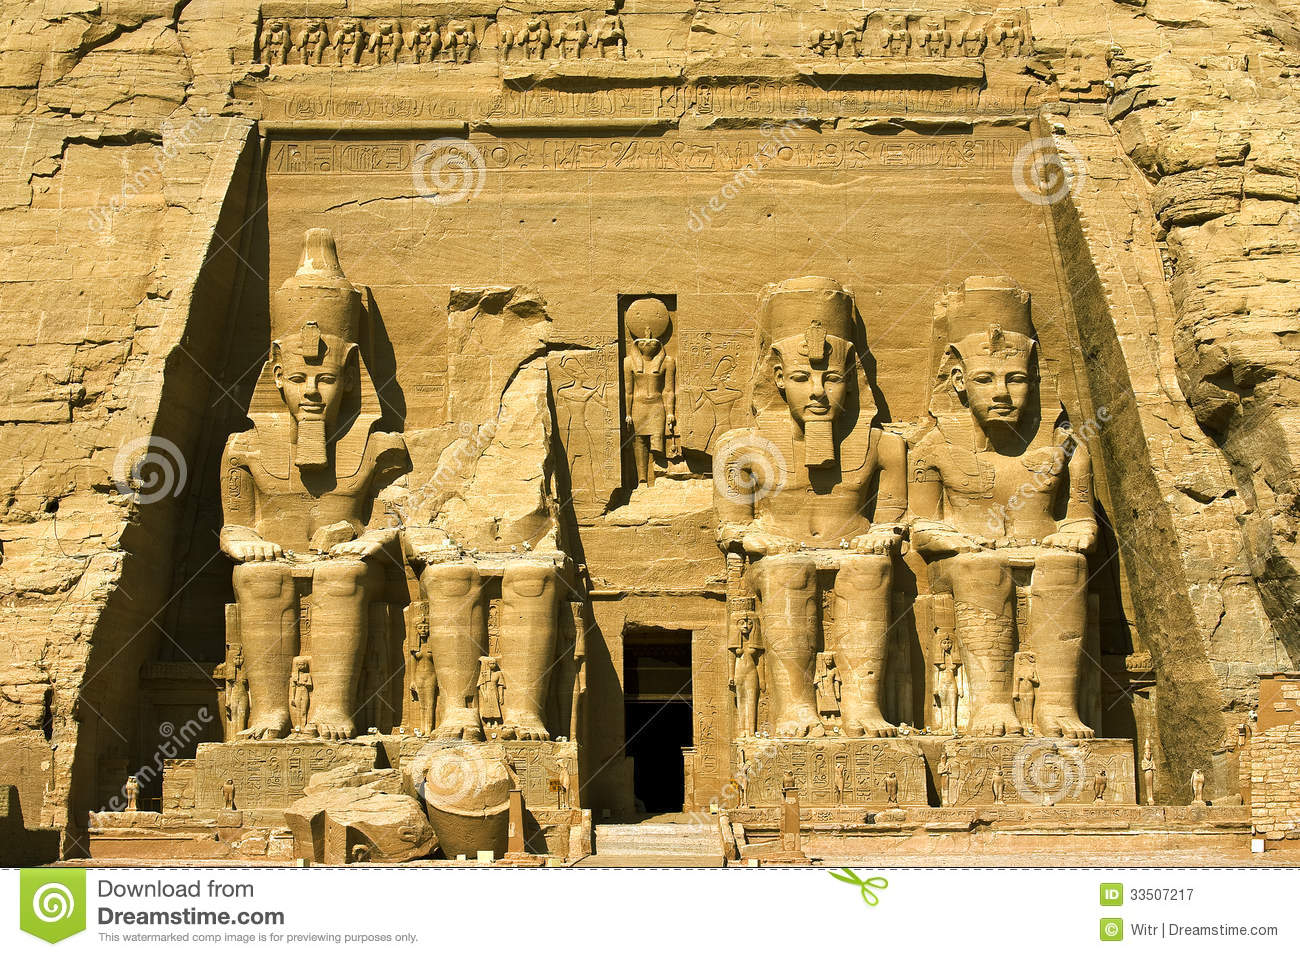 Abu Simbel Temple Of Hathor (Nefertari), Egypt. Stock Image.